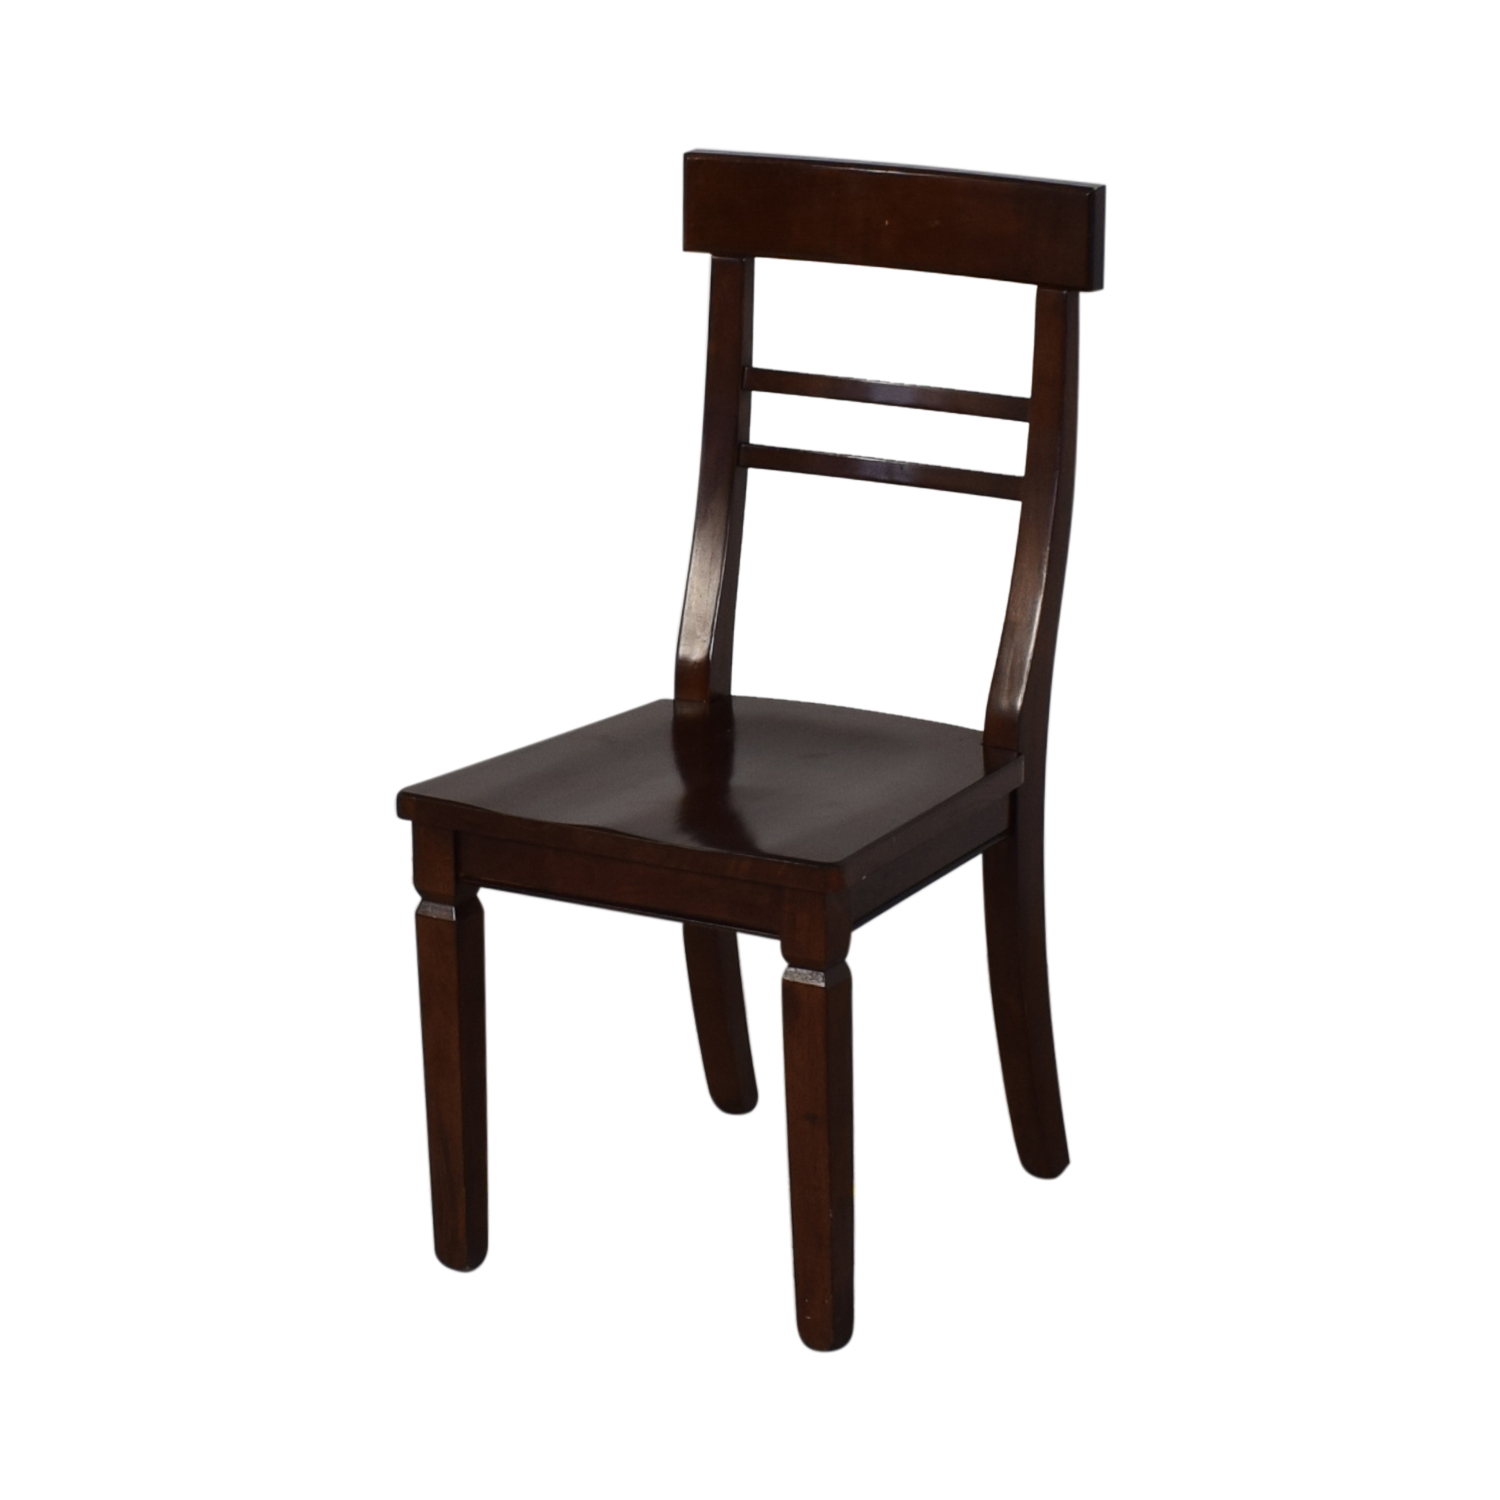 Crate & Barrel Crate & Barrel Dining Chairs discount